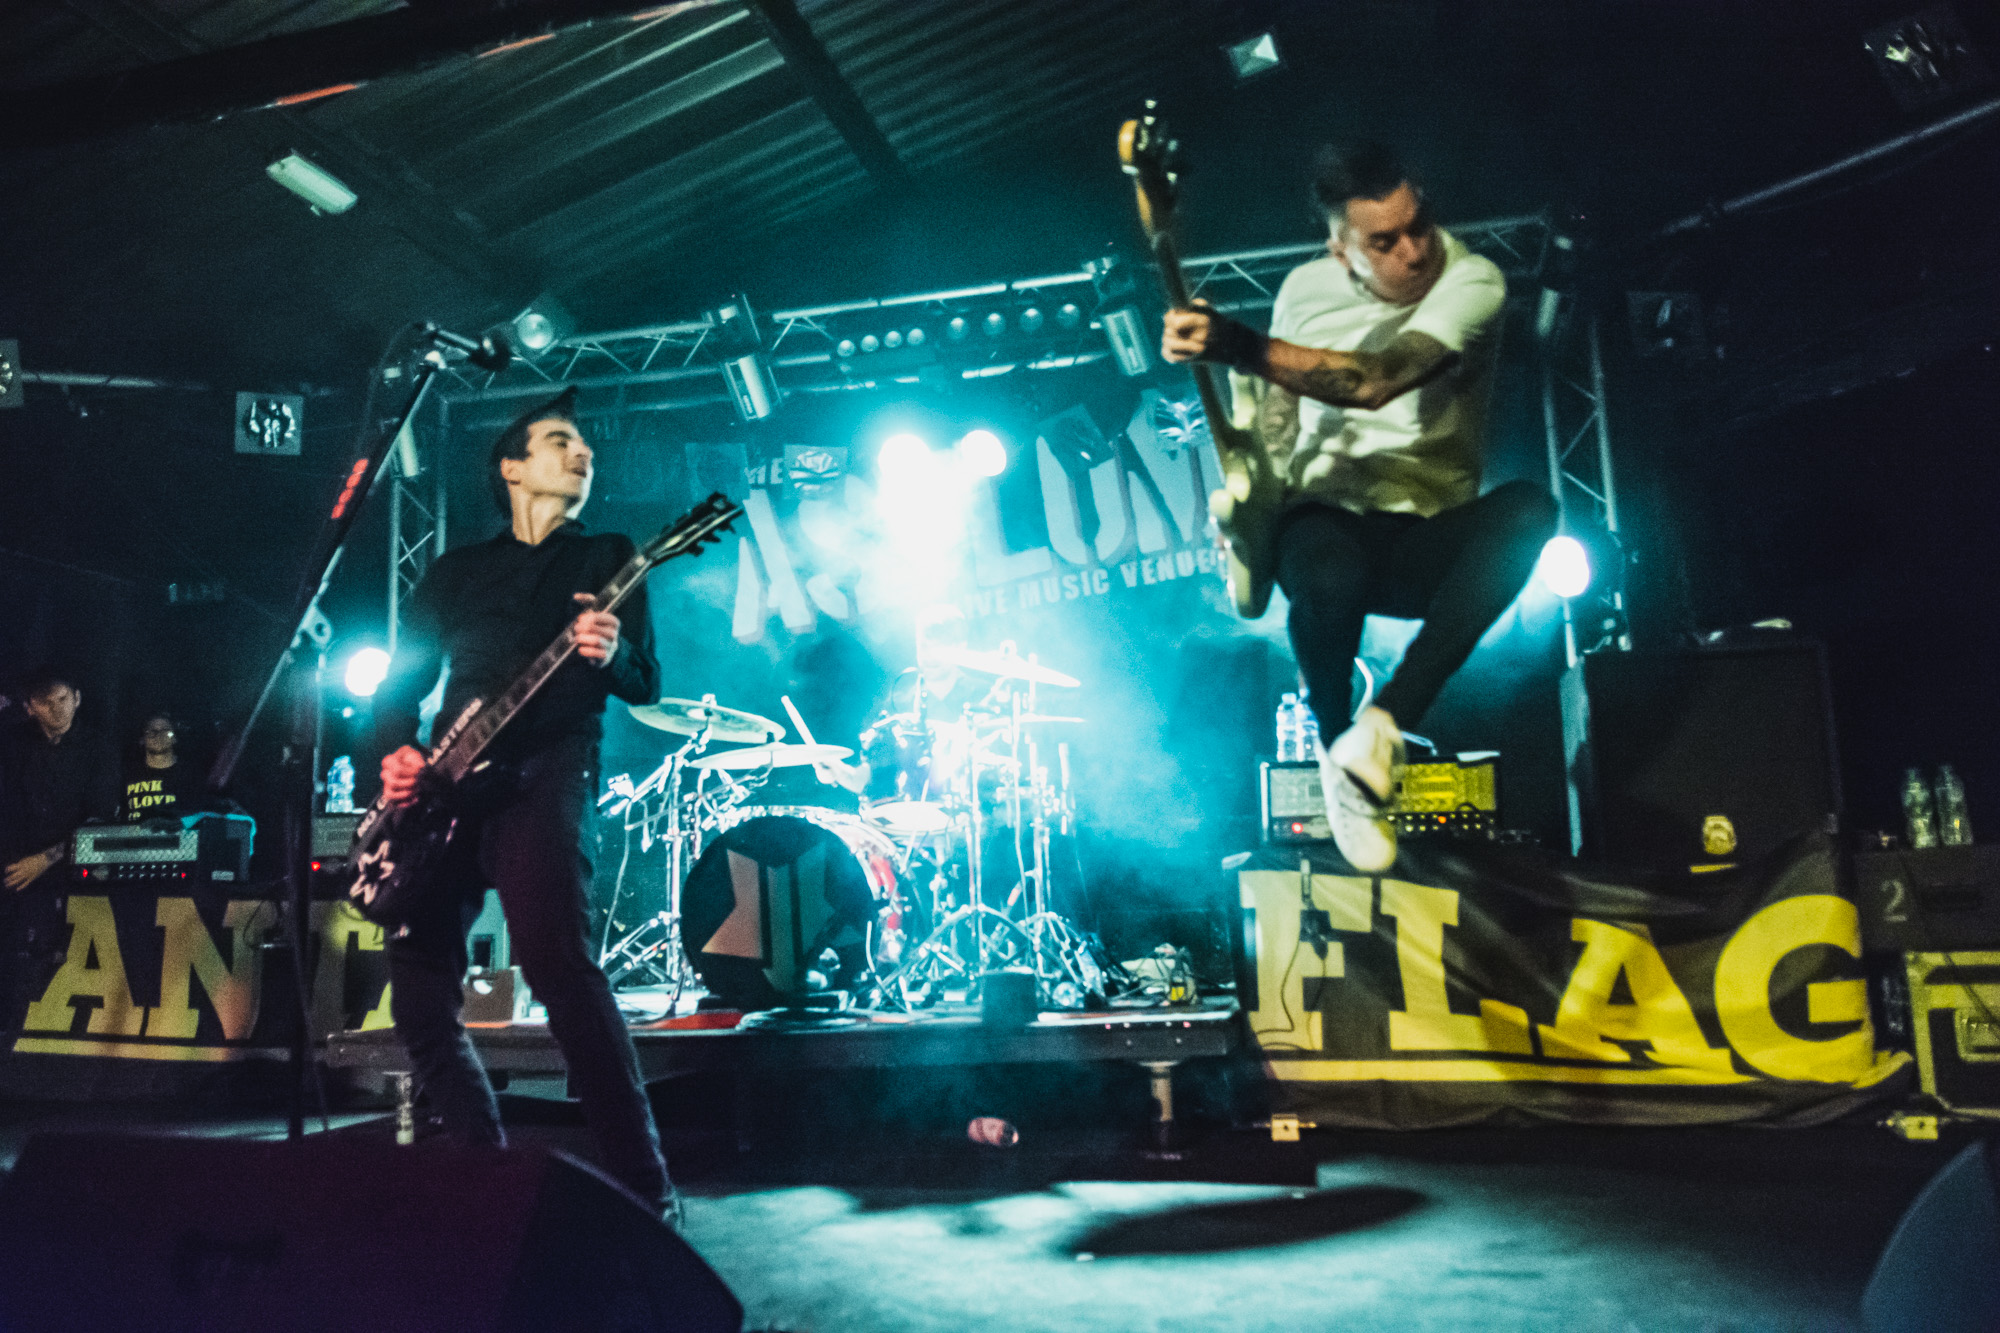 Anti-Flag-The-Asylum-Birmingham_20181030_09.jpg